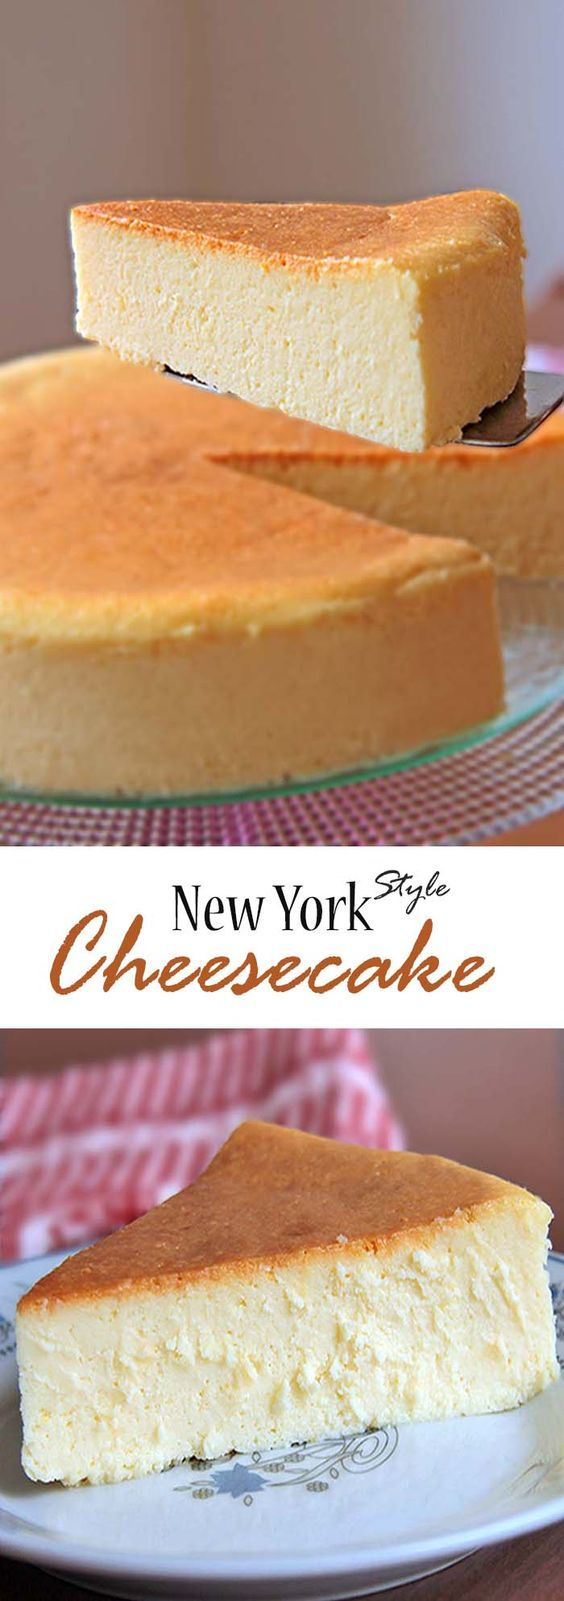 New York Style Cheesecake is creamy smooth lightly sweet with a touch of lemon. You have to allow it to cool properly before you cut it.